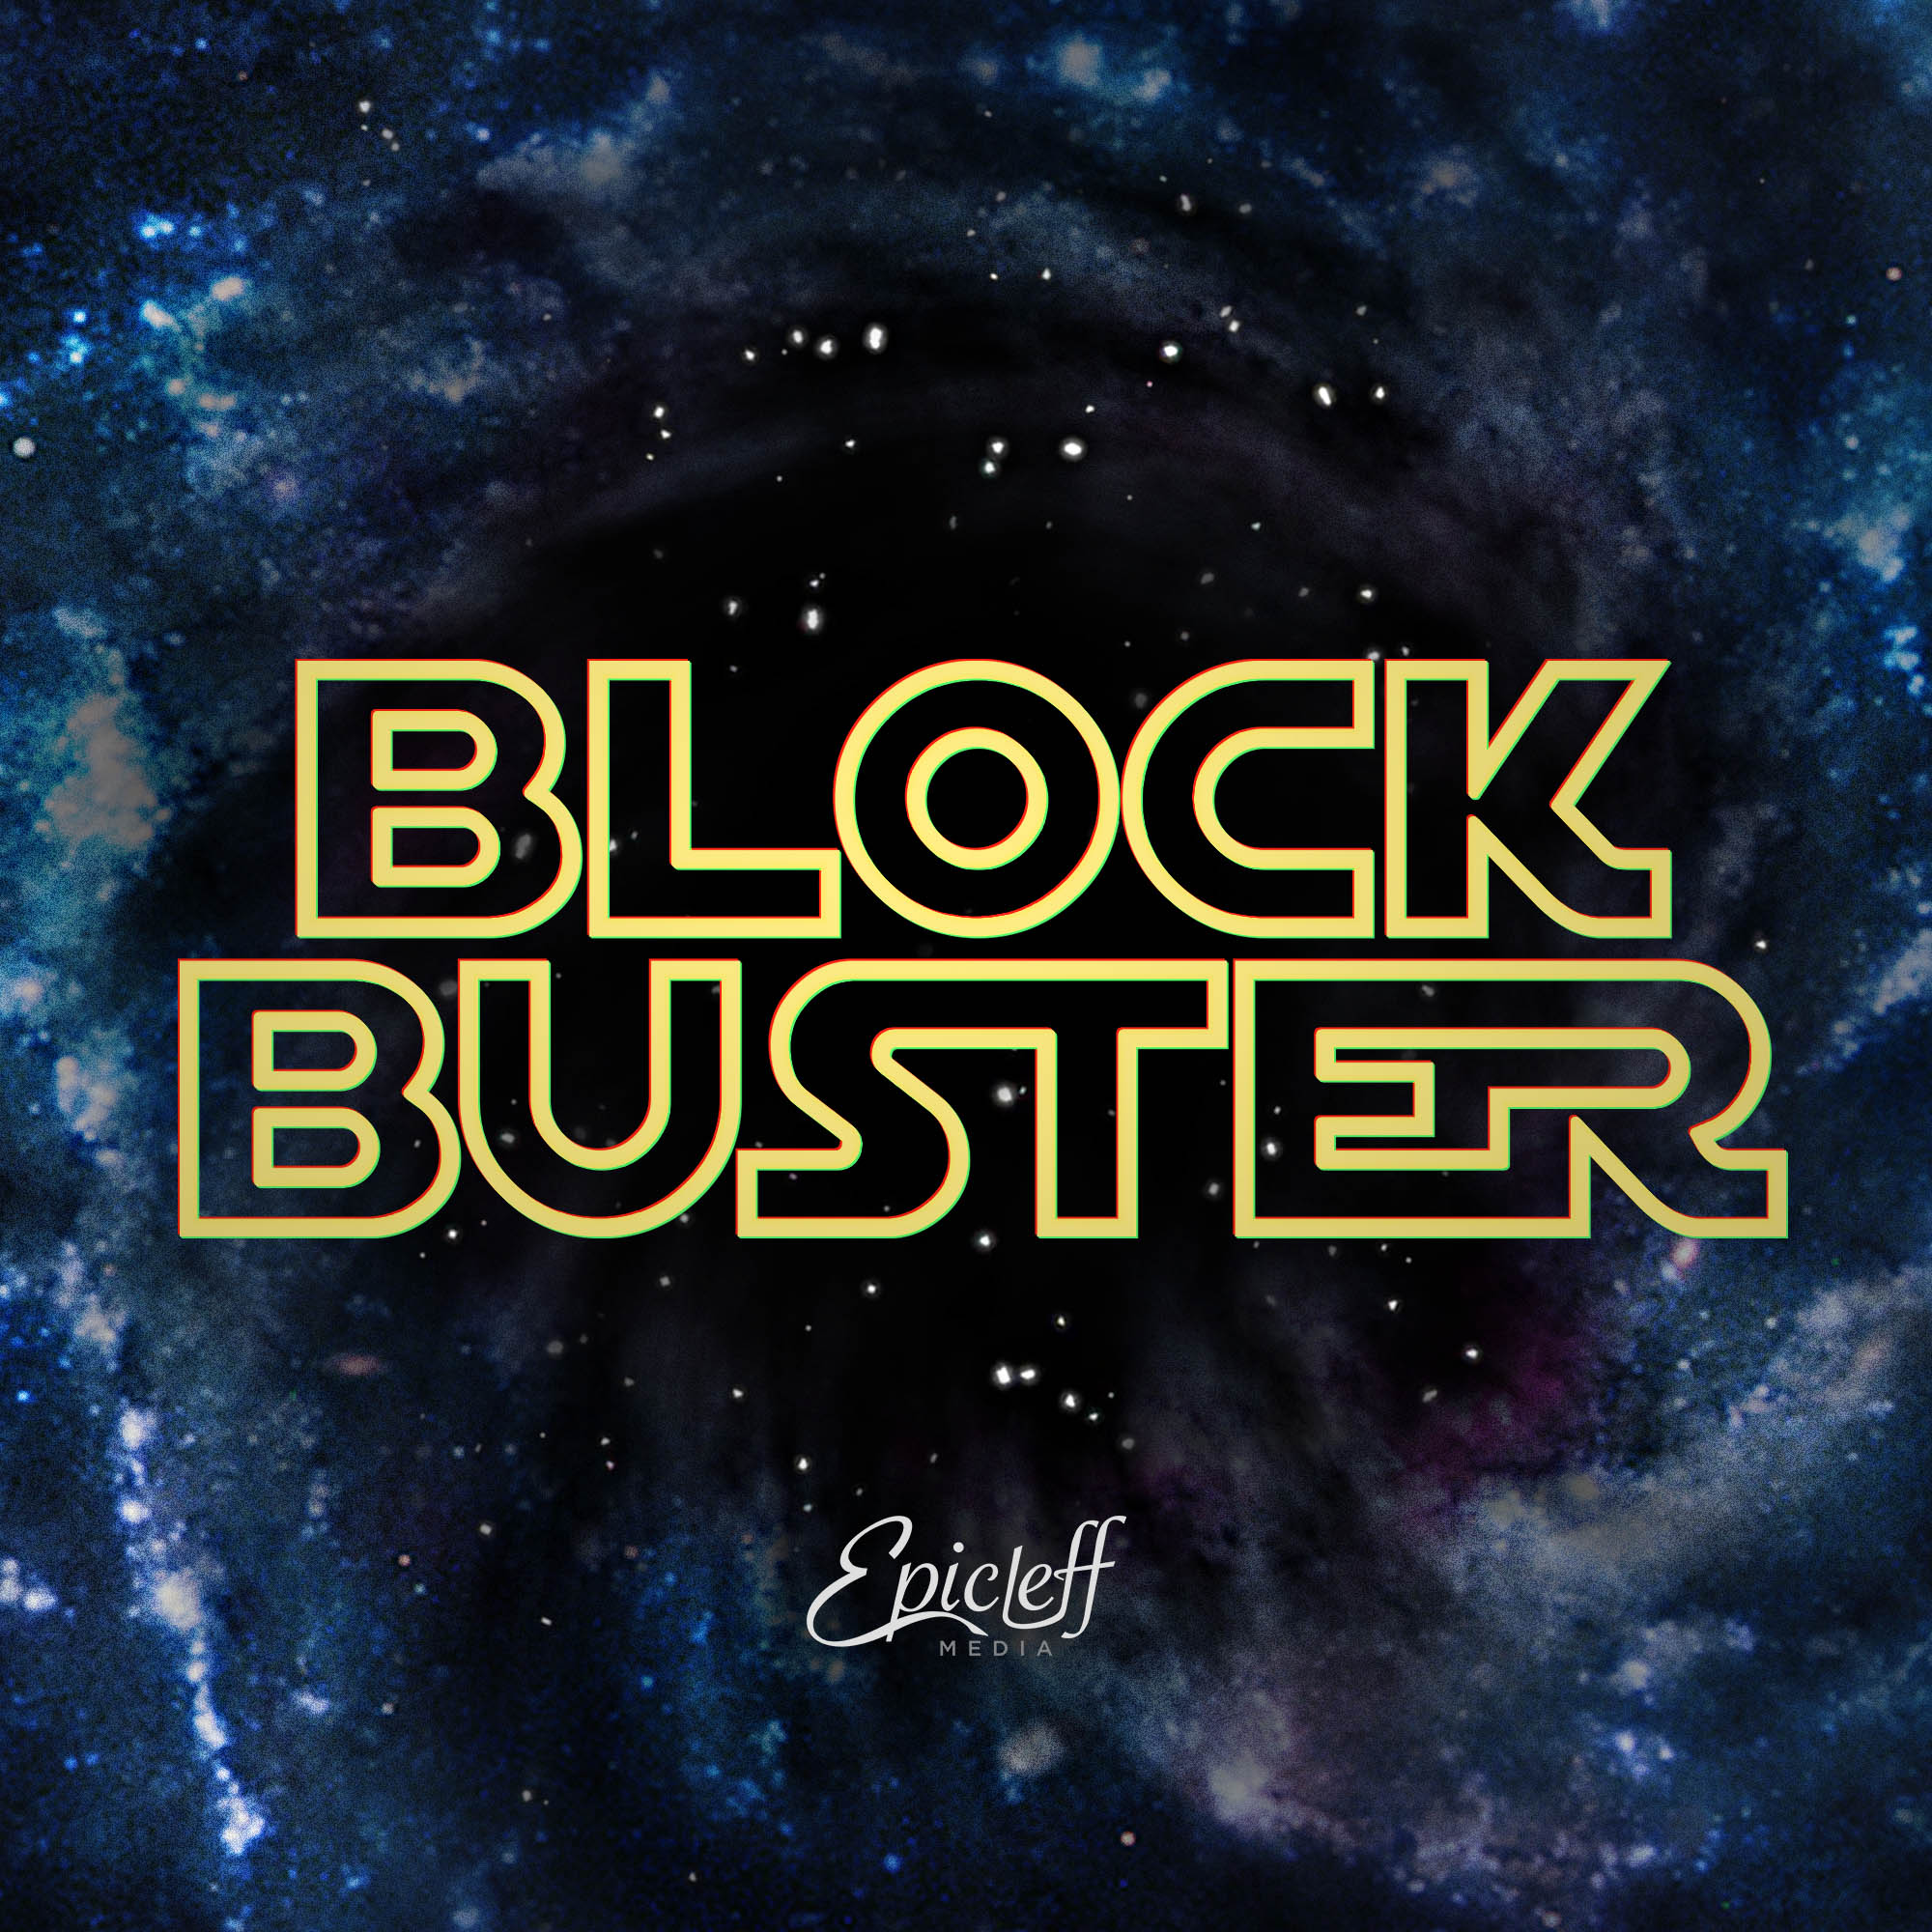 Blockbuster | Listen via Stitcher for Podcasts